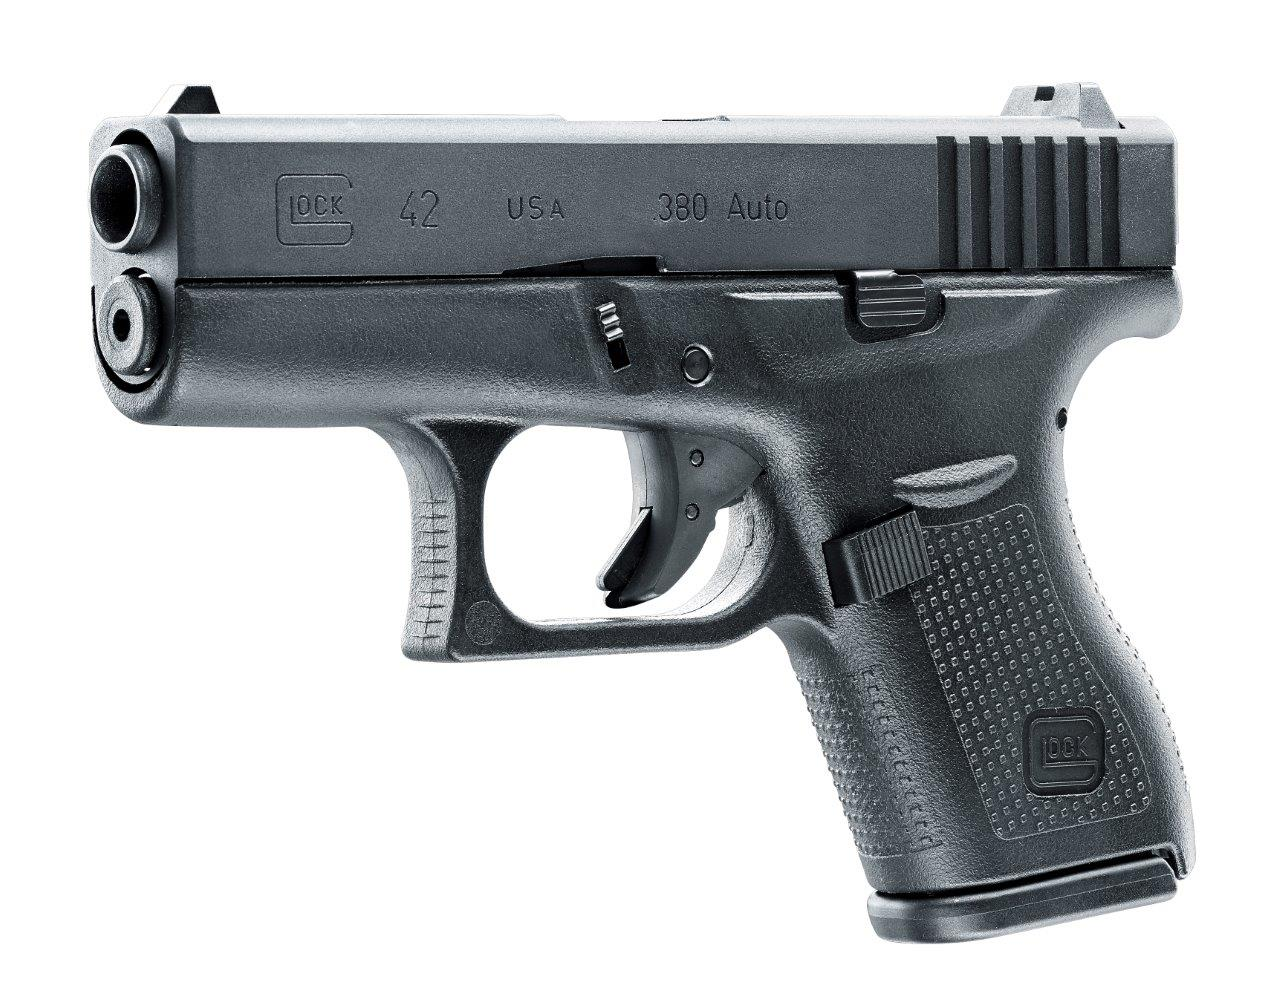 Glock 42 Airsoftpistole Blow Back